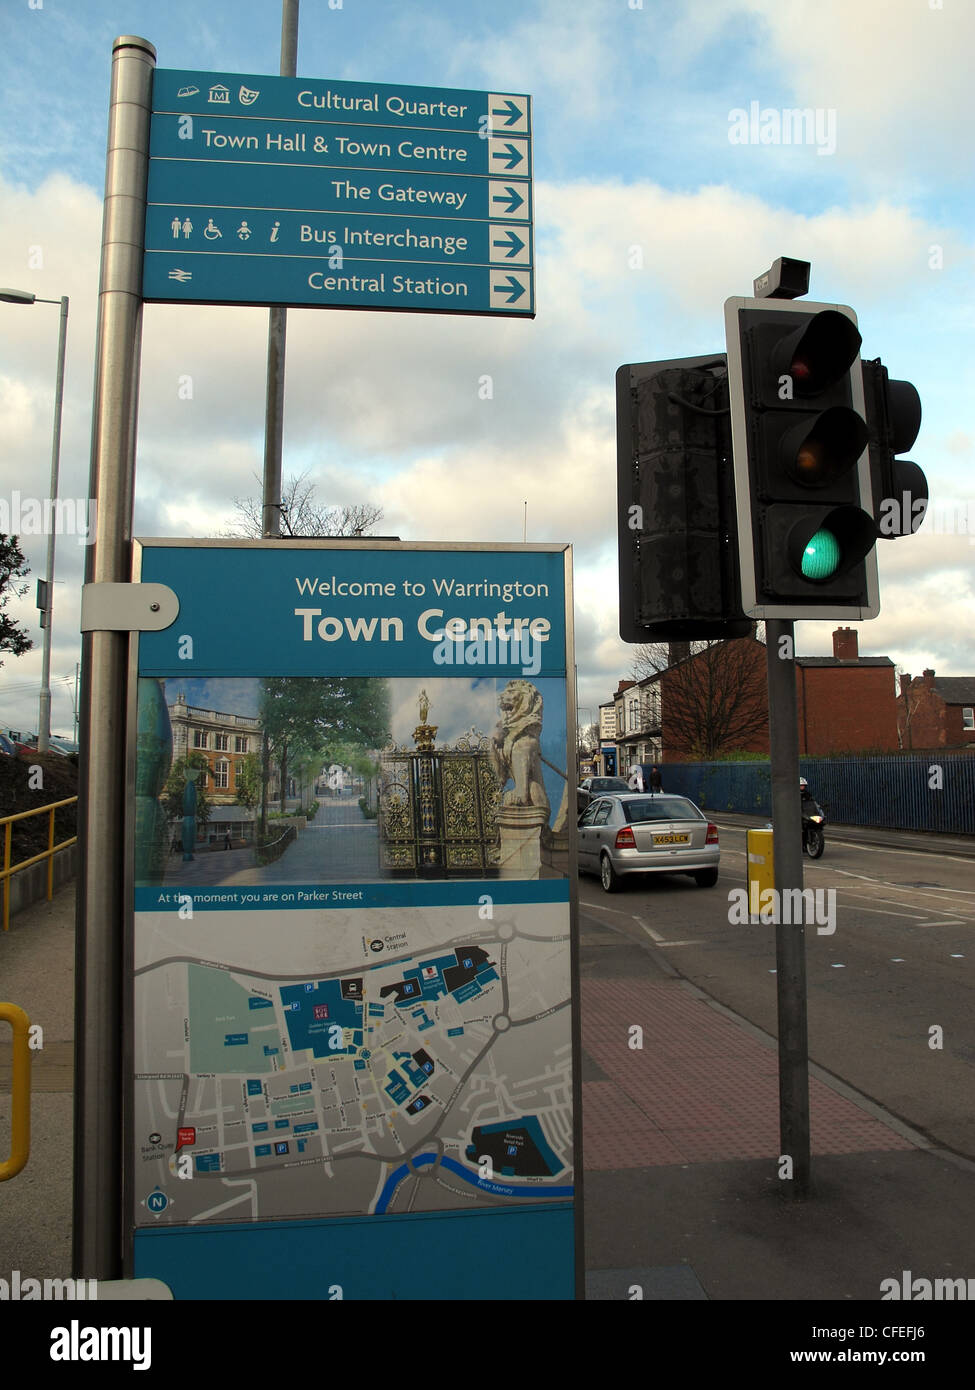 Welcome,to,Warrington,Town,Centre,sign,outside,Bank,Quay,mainline,railway,station,Cheshire,England,UK,traffic,light,green,light,gotonysmith,trafficlight,greenlight,map,direction,directions,best,really,good,Parker,St,street,road,WBC,Warrington,Borough,Council,Unitary,authority,North,west,northwest,newtown,new,town,designated,gotonysmith,Warringtonians,Buy Pictures of,Buy Images Of